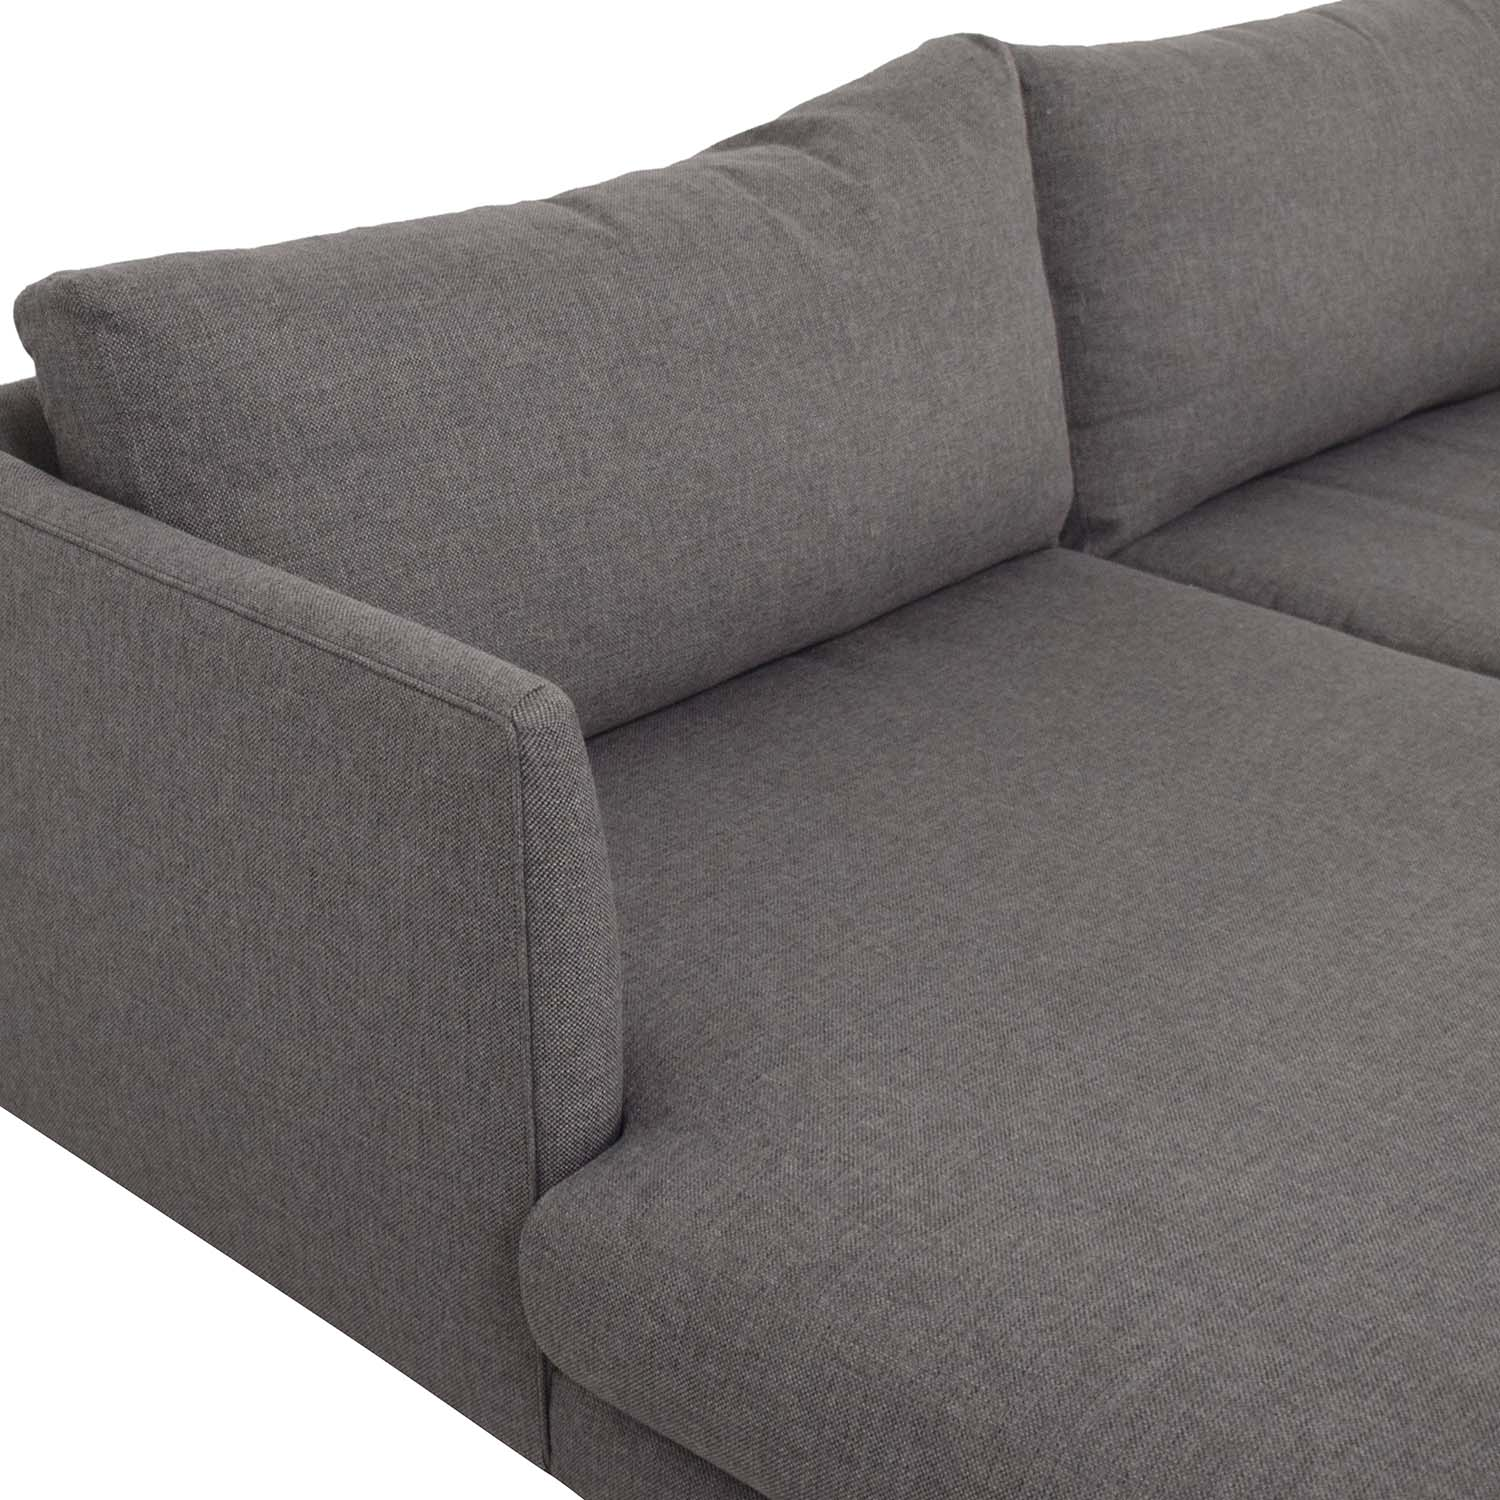 Article Article Burrard Left Sectional Sofa on sale